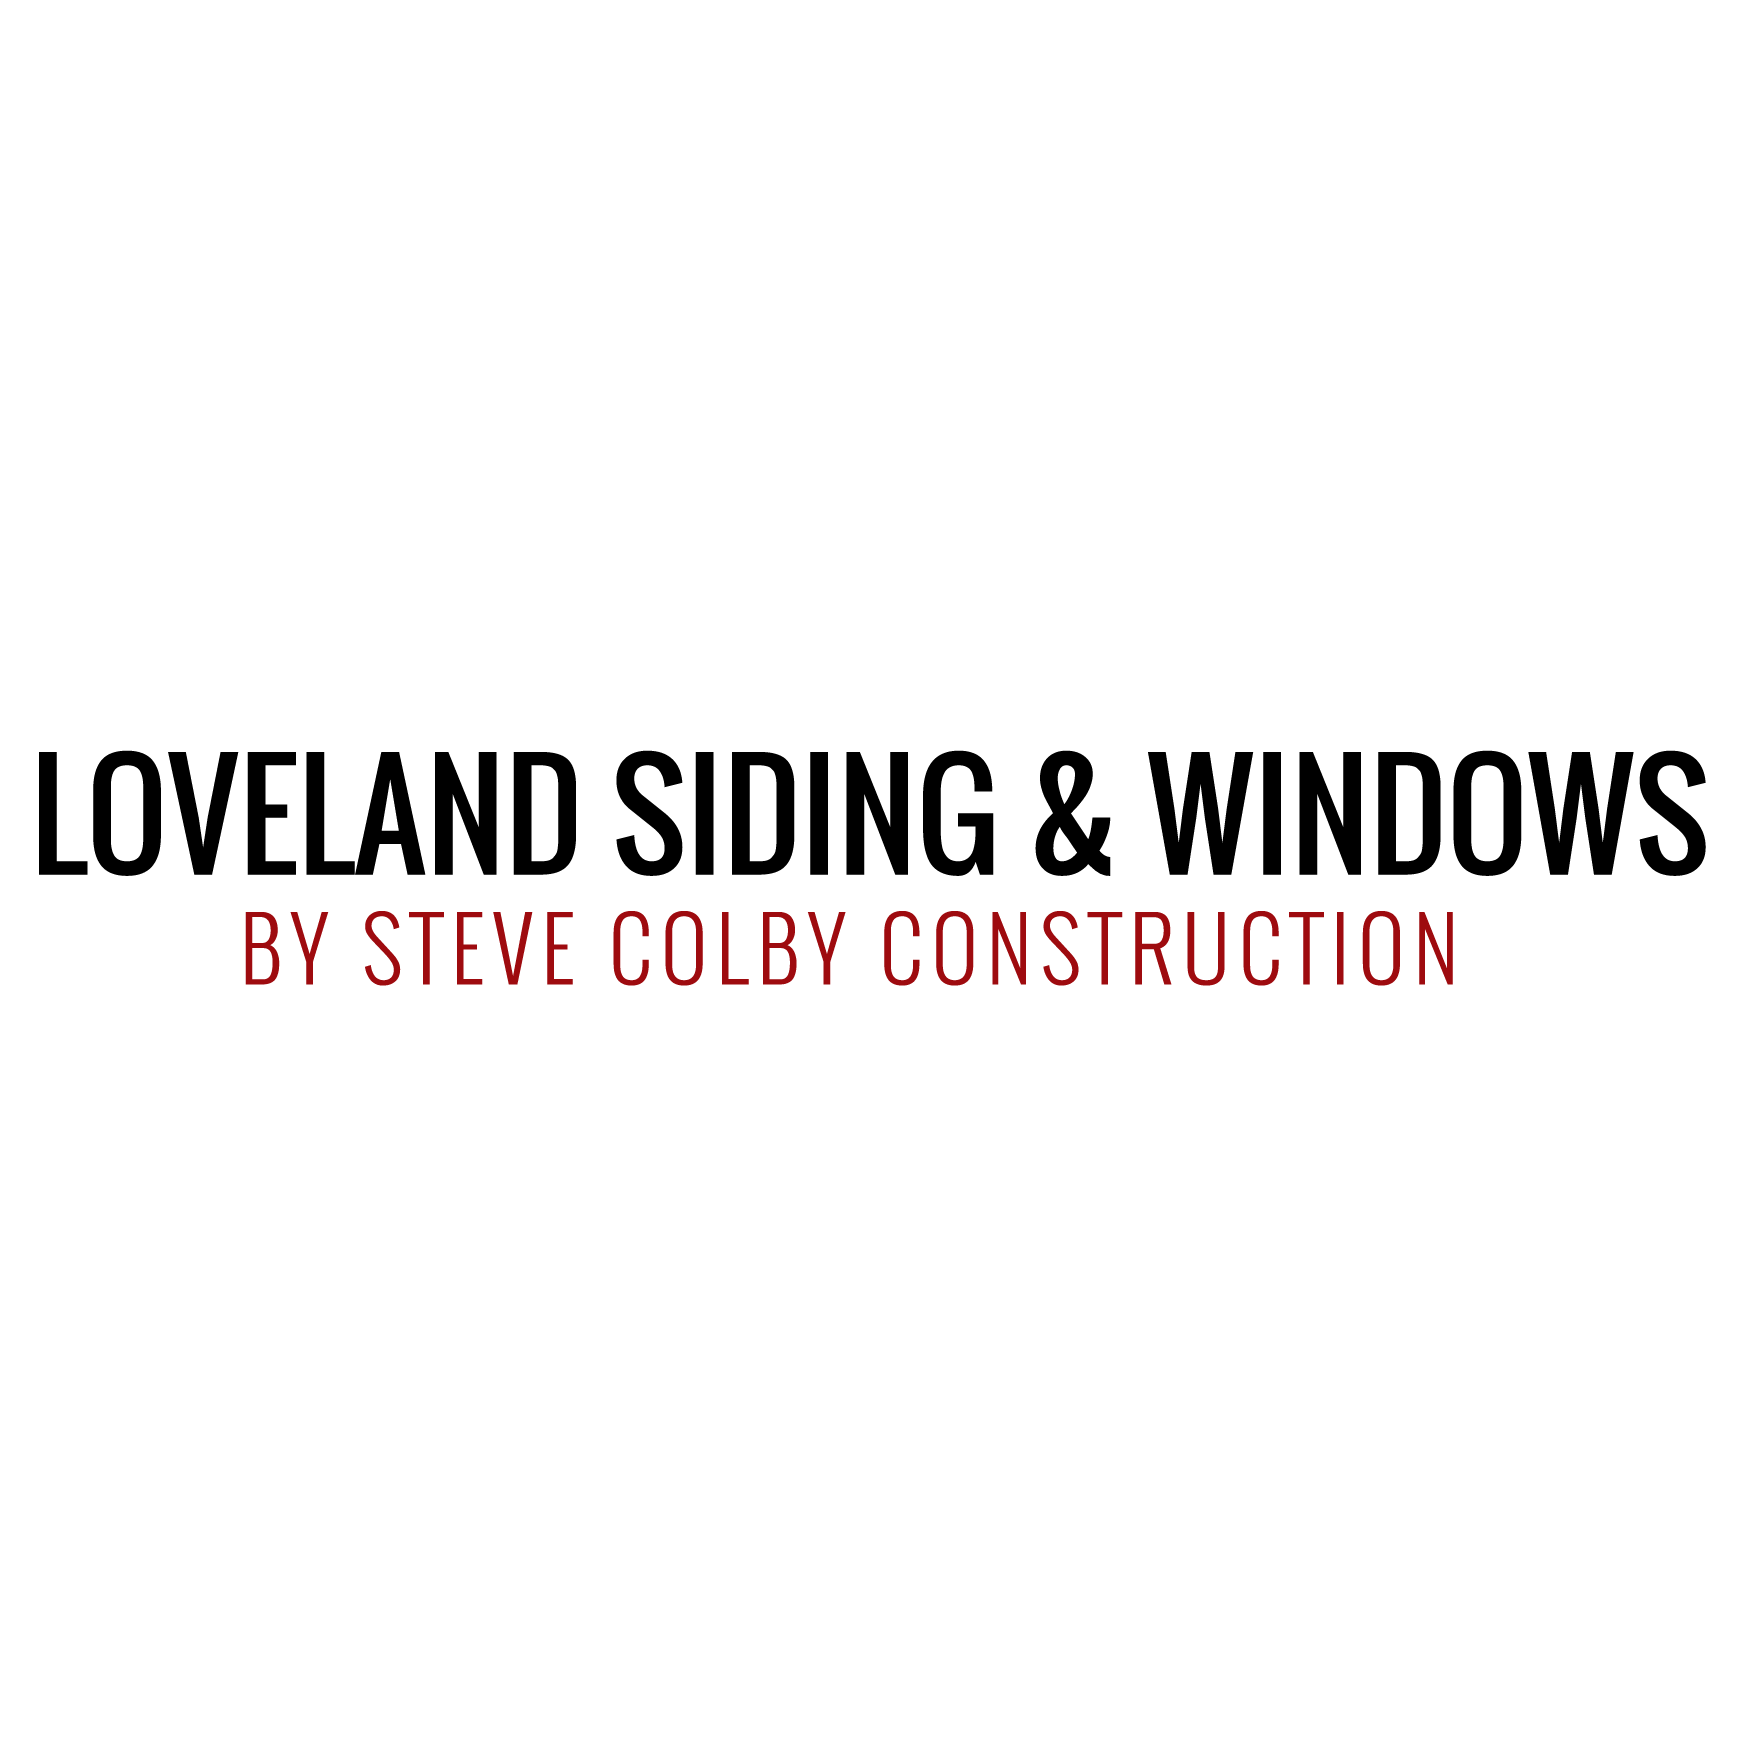 Loveland Siding & Windows By Steve Colby Construction